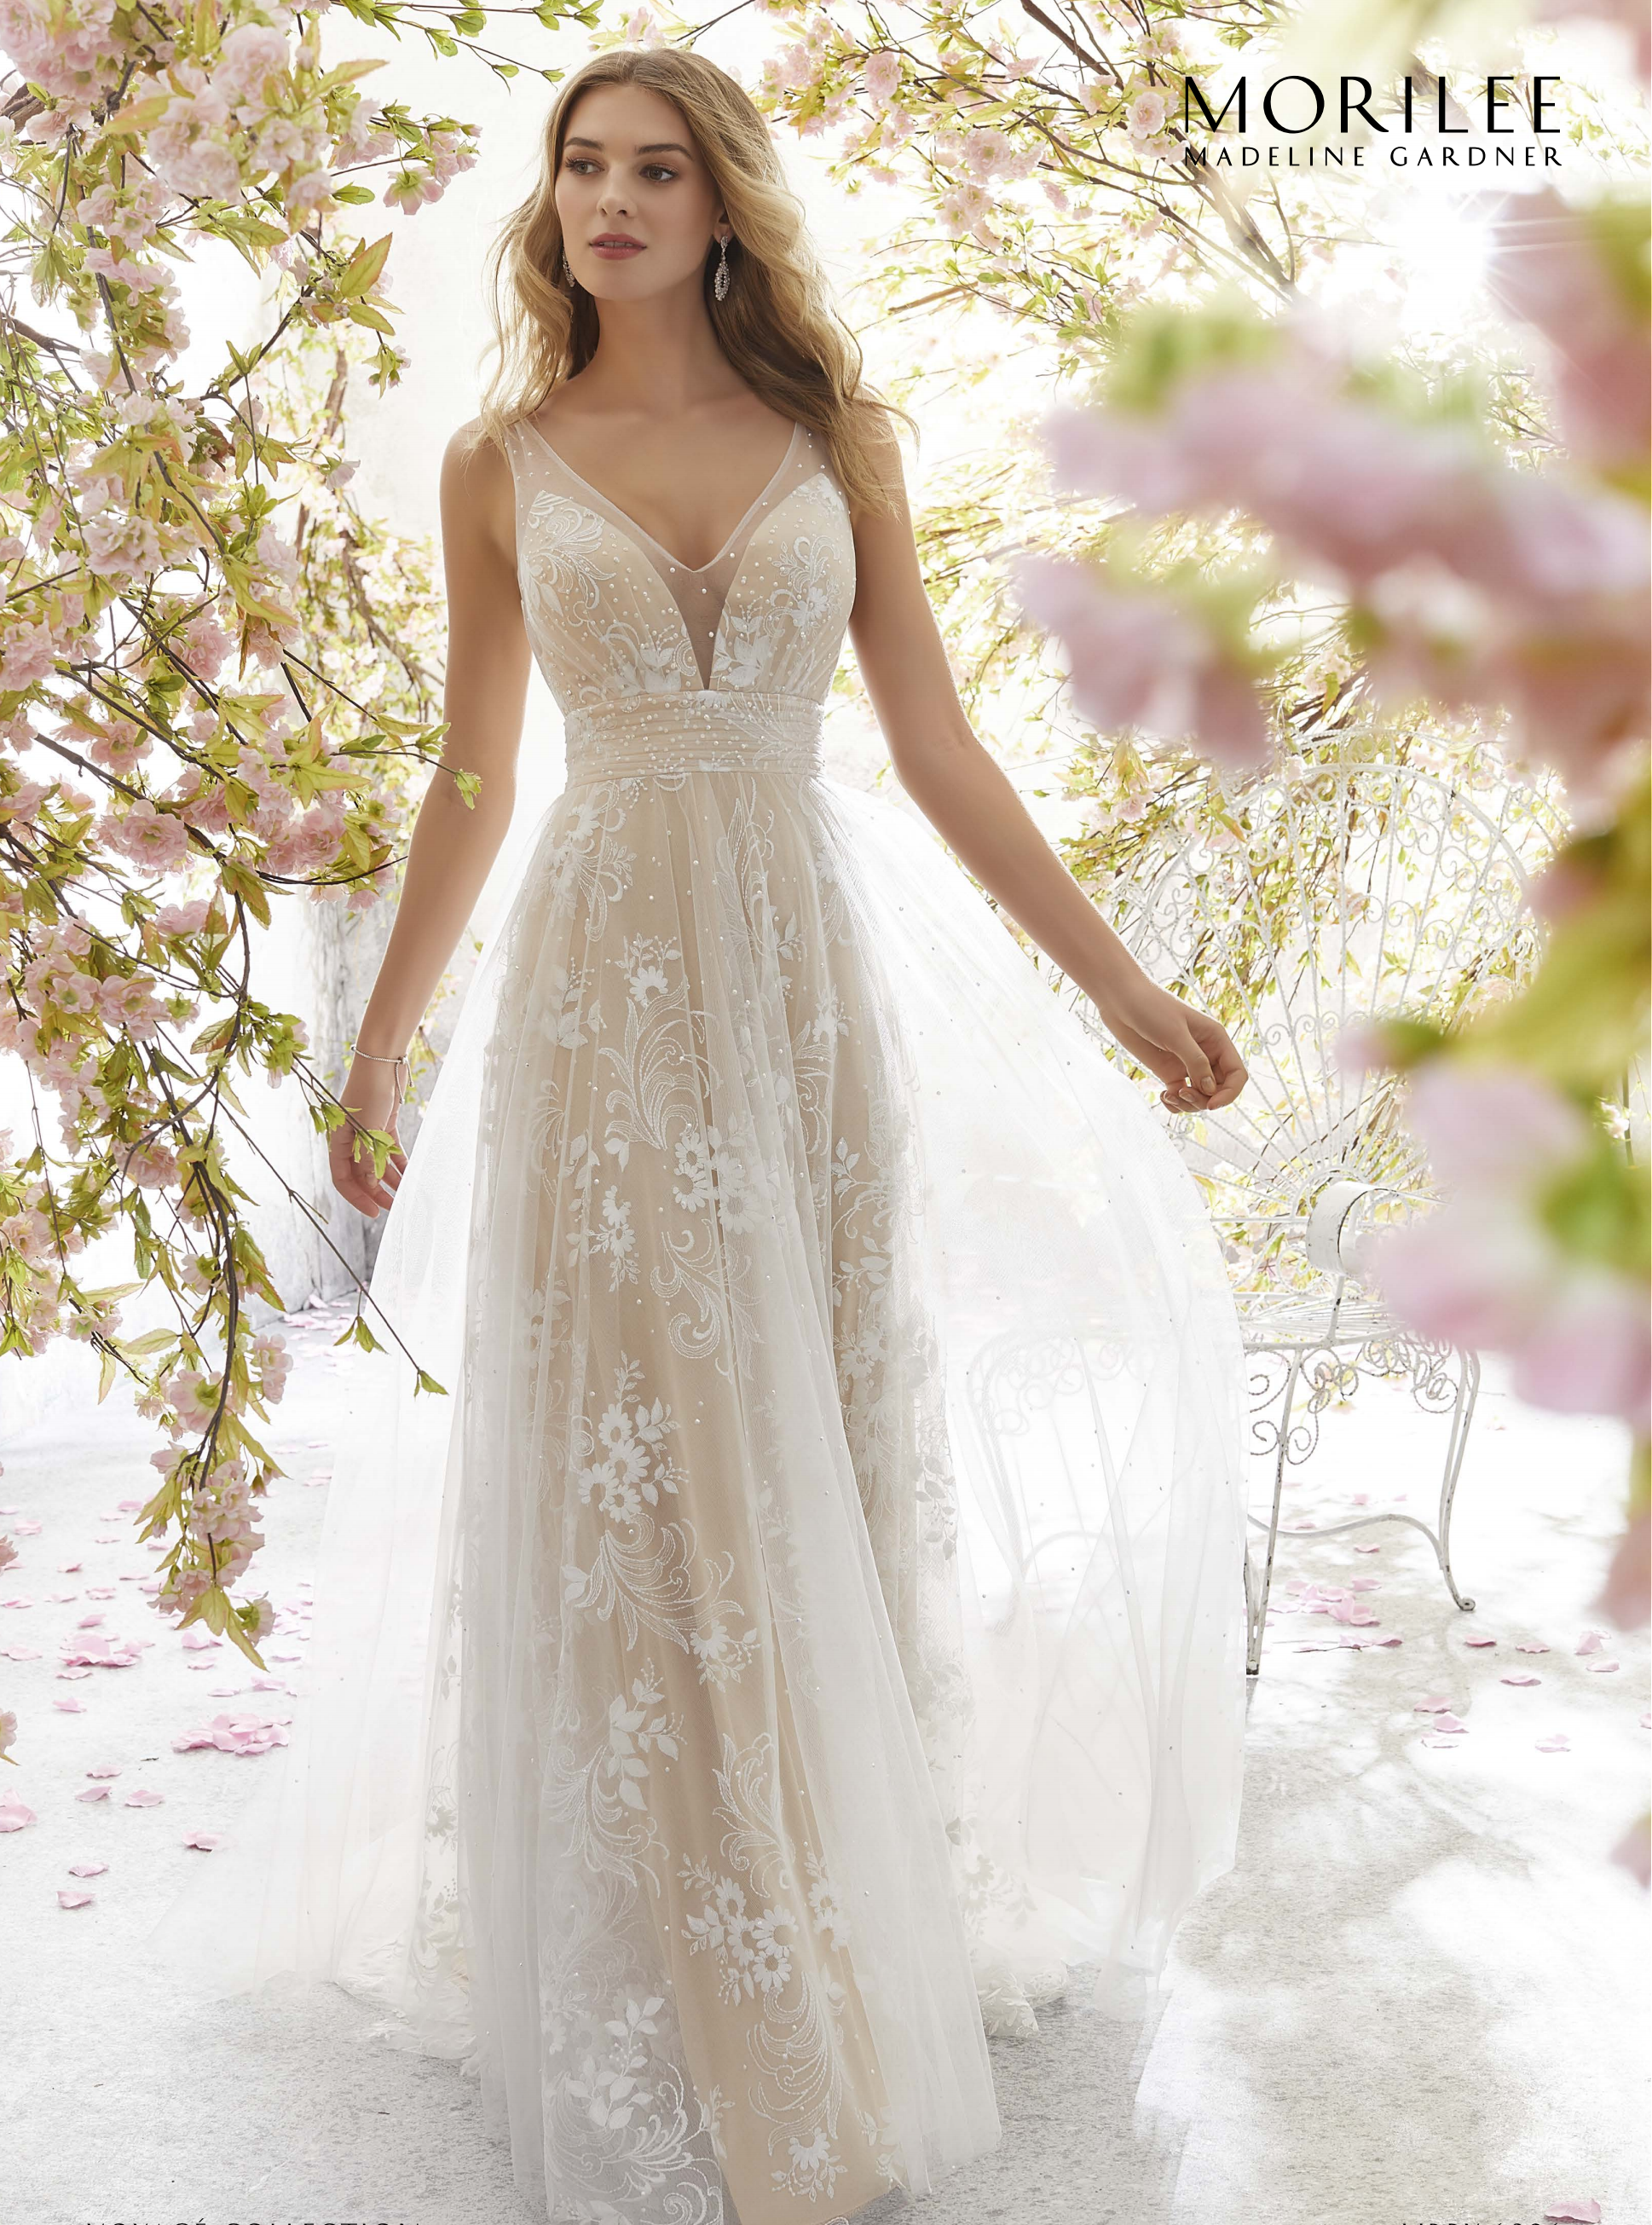 Mori lee style new bridal gowns spring pinterest